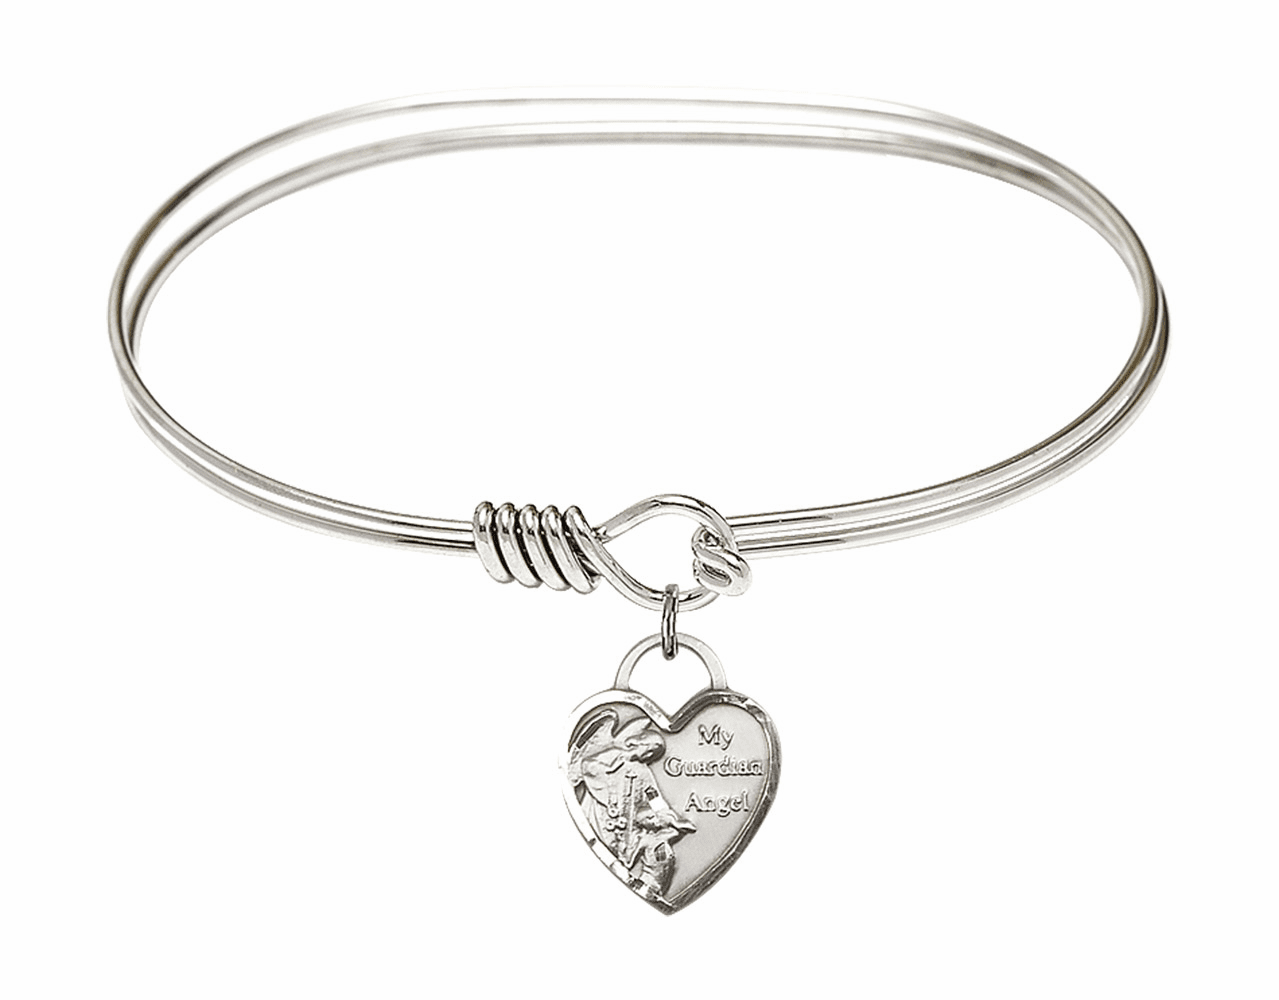 Round Eye Hook Bangle Bracelet w/Heart My Guardian Angel Sterling Silver Charm by Bliss Mfg